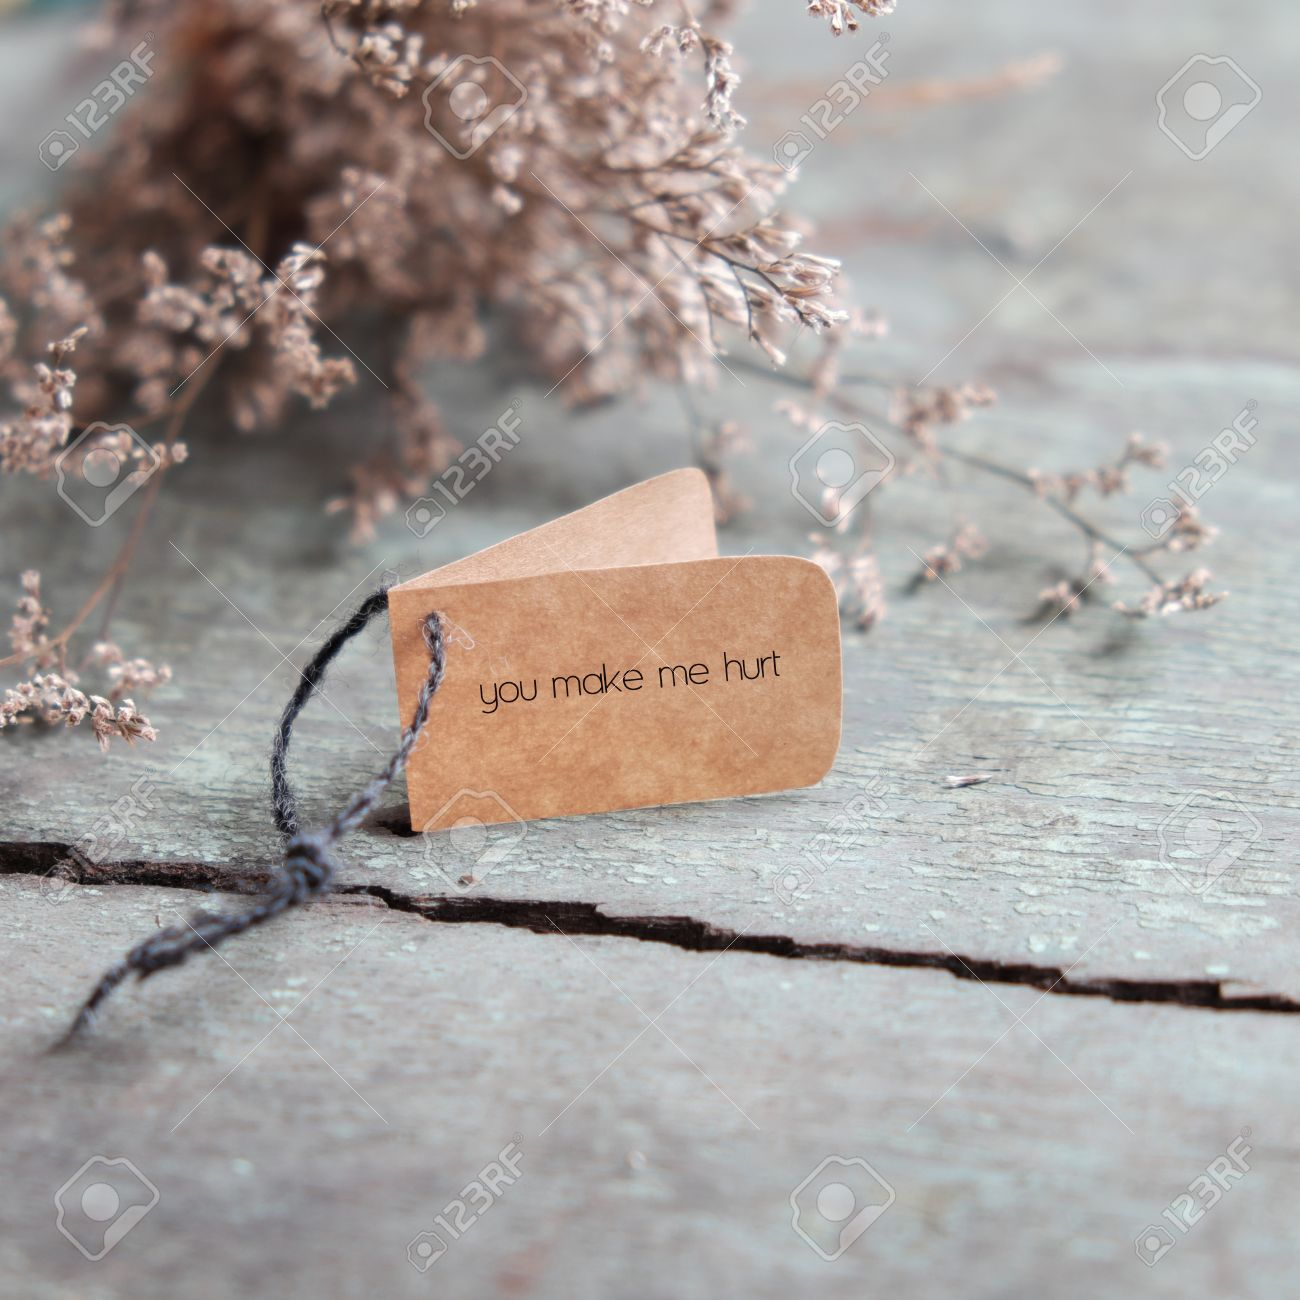 Charming Sad Background In Love, With Message On Paper As: You Make Me Hurt, Amazing Pictures